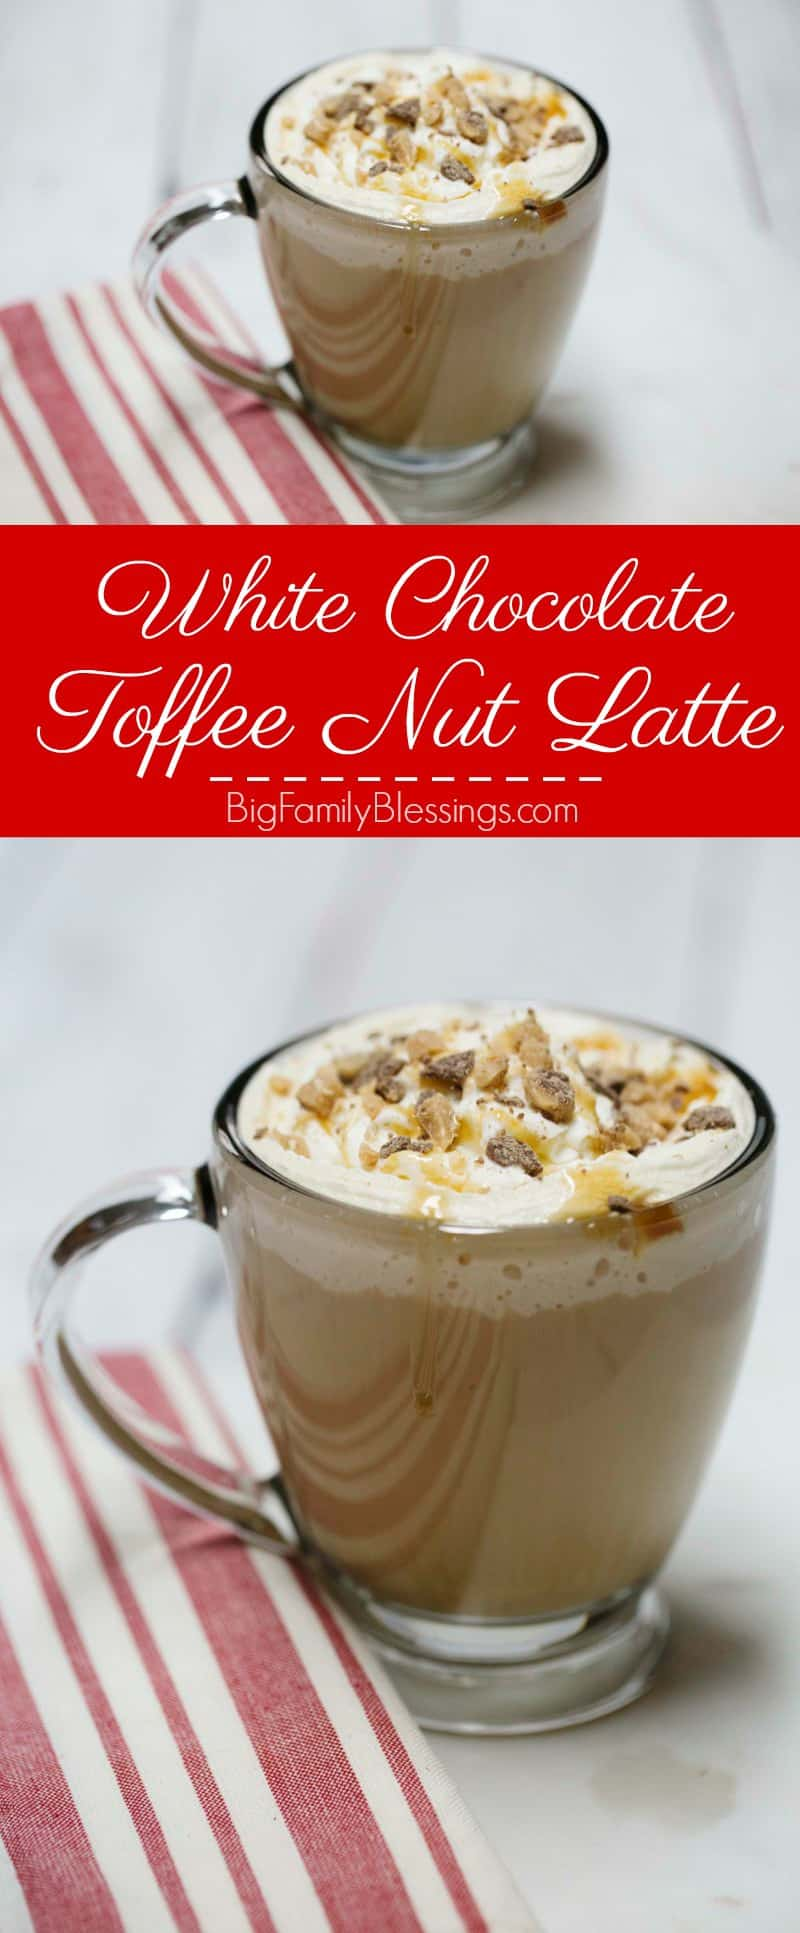 White Chocolate Toffee Nut Latte